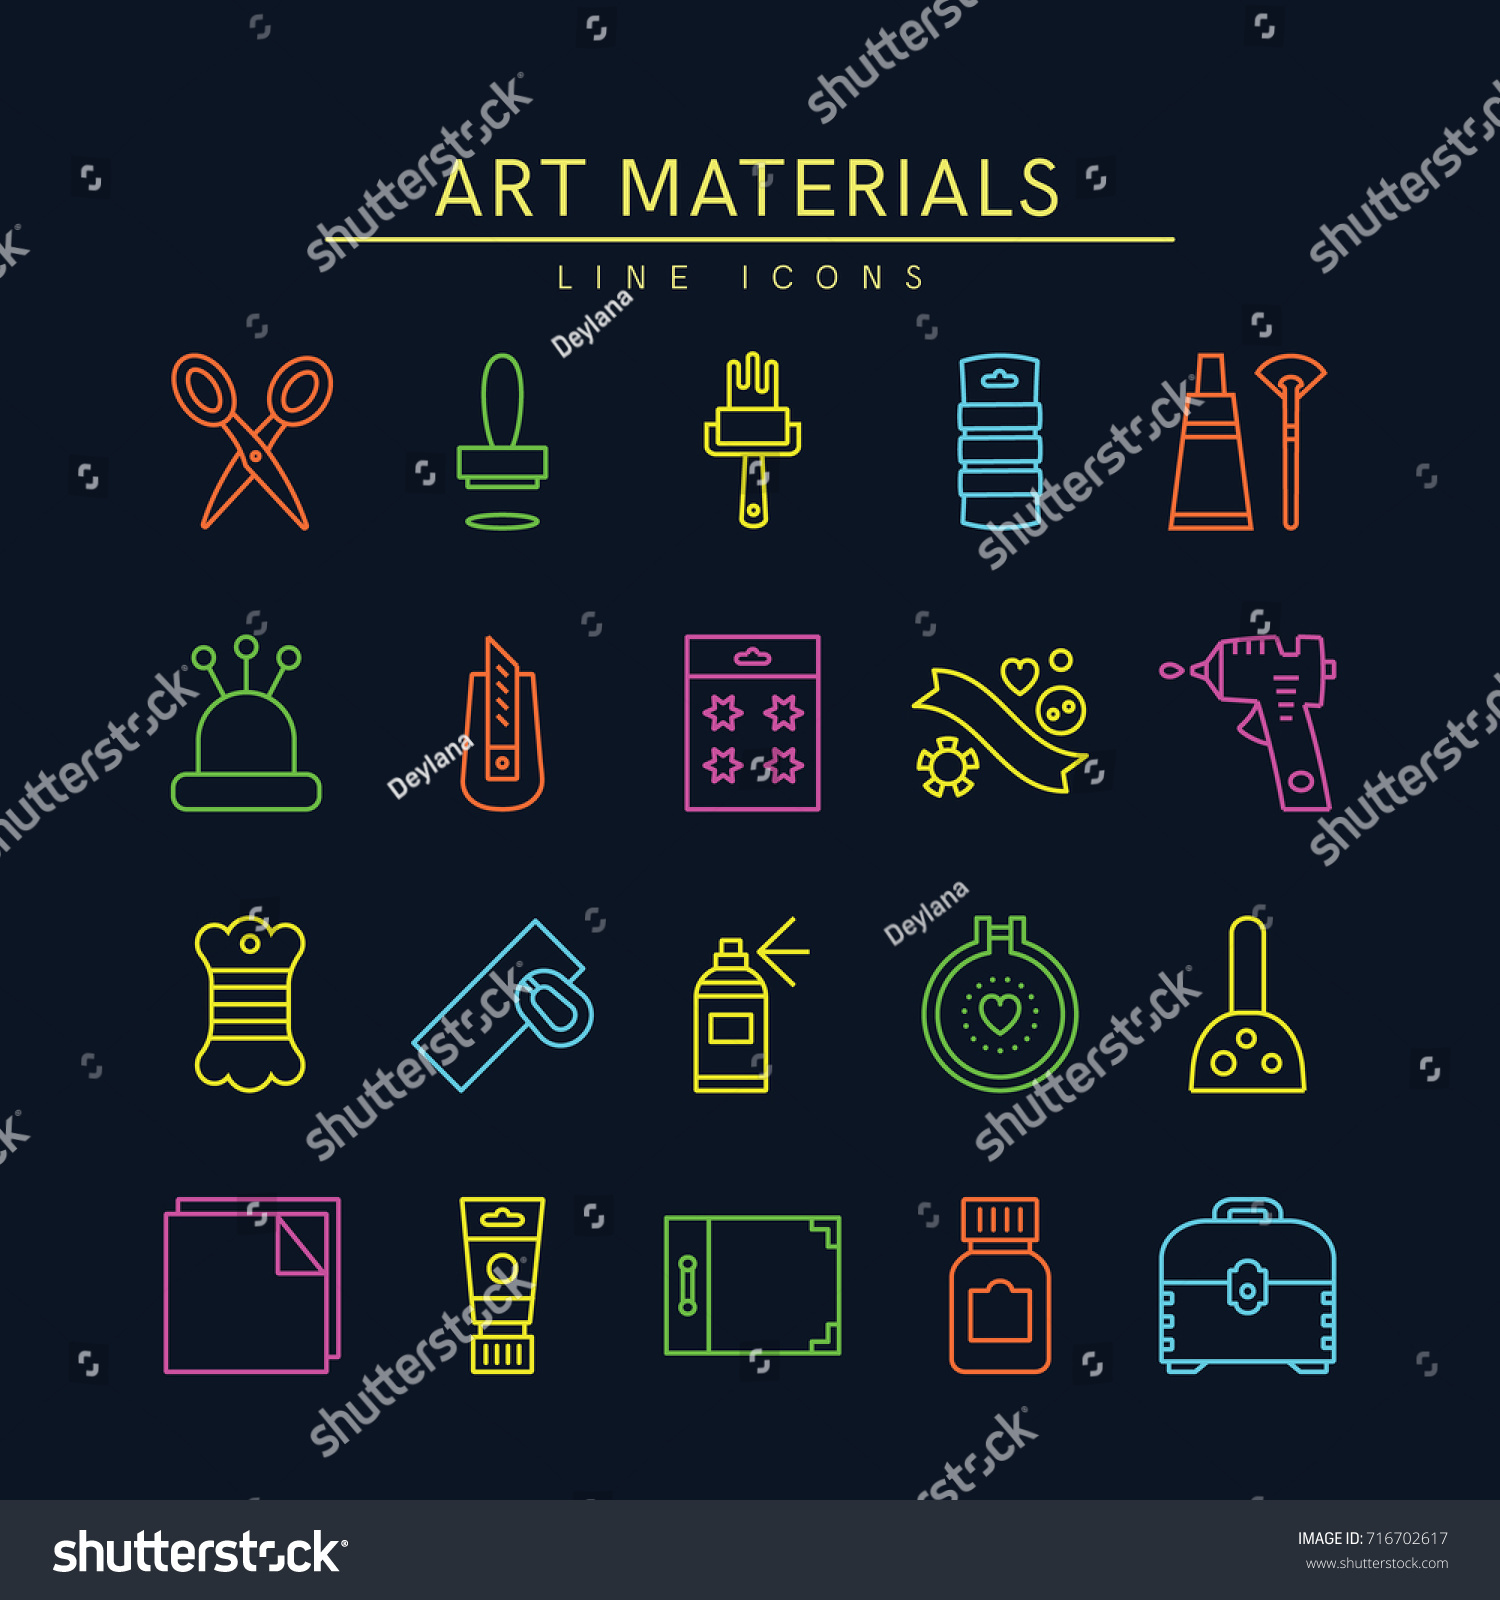 Craft Supplies Materials Thin Line Icons Set Show Making And